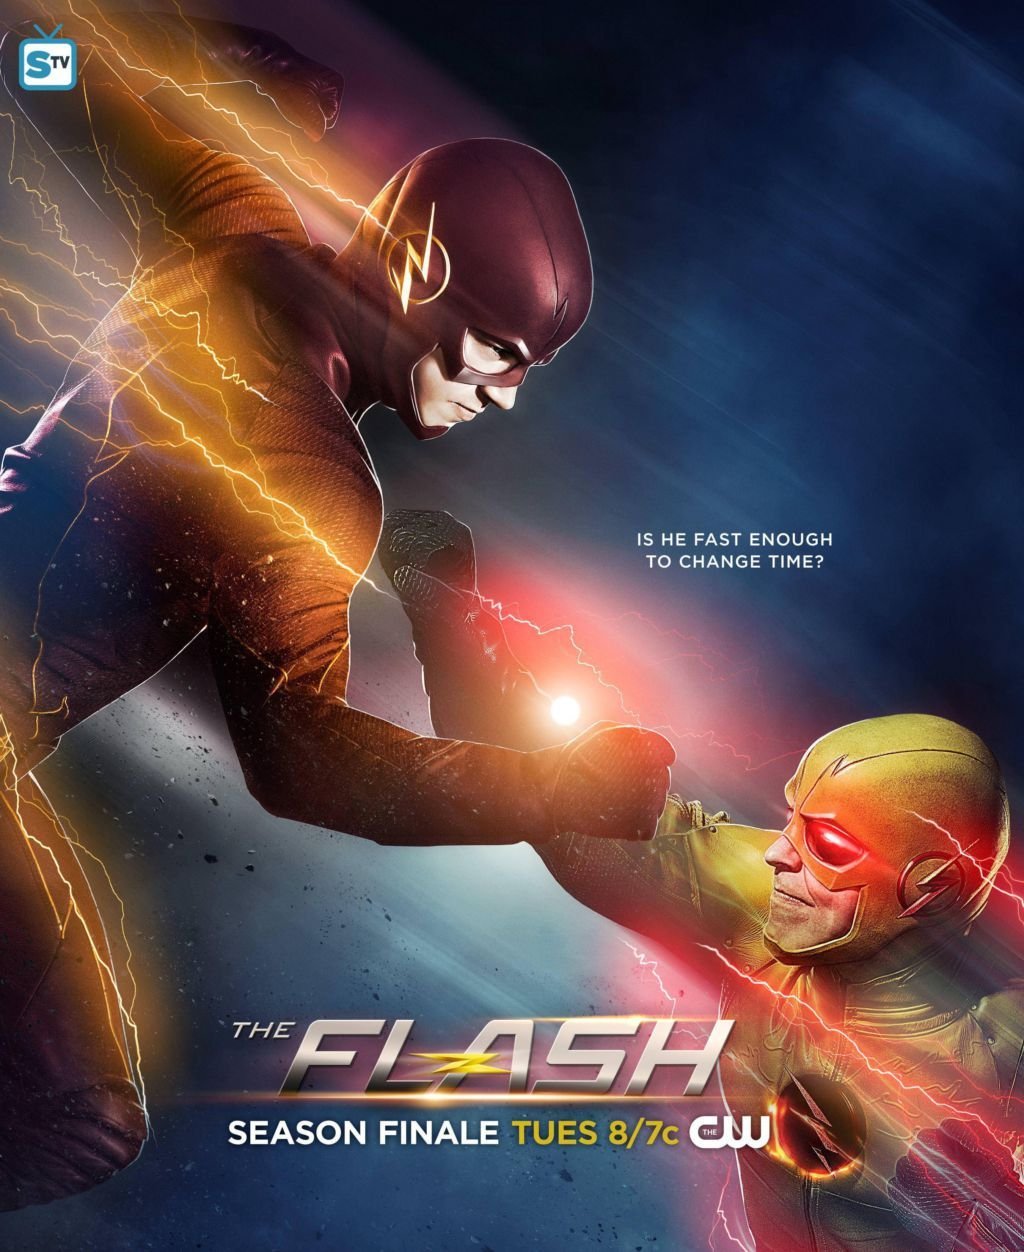 The Flash Poster 30 Printable Posters Free Download Imagenes